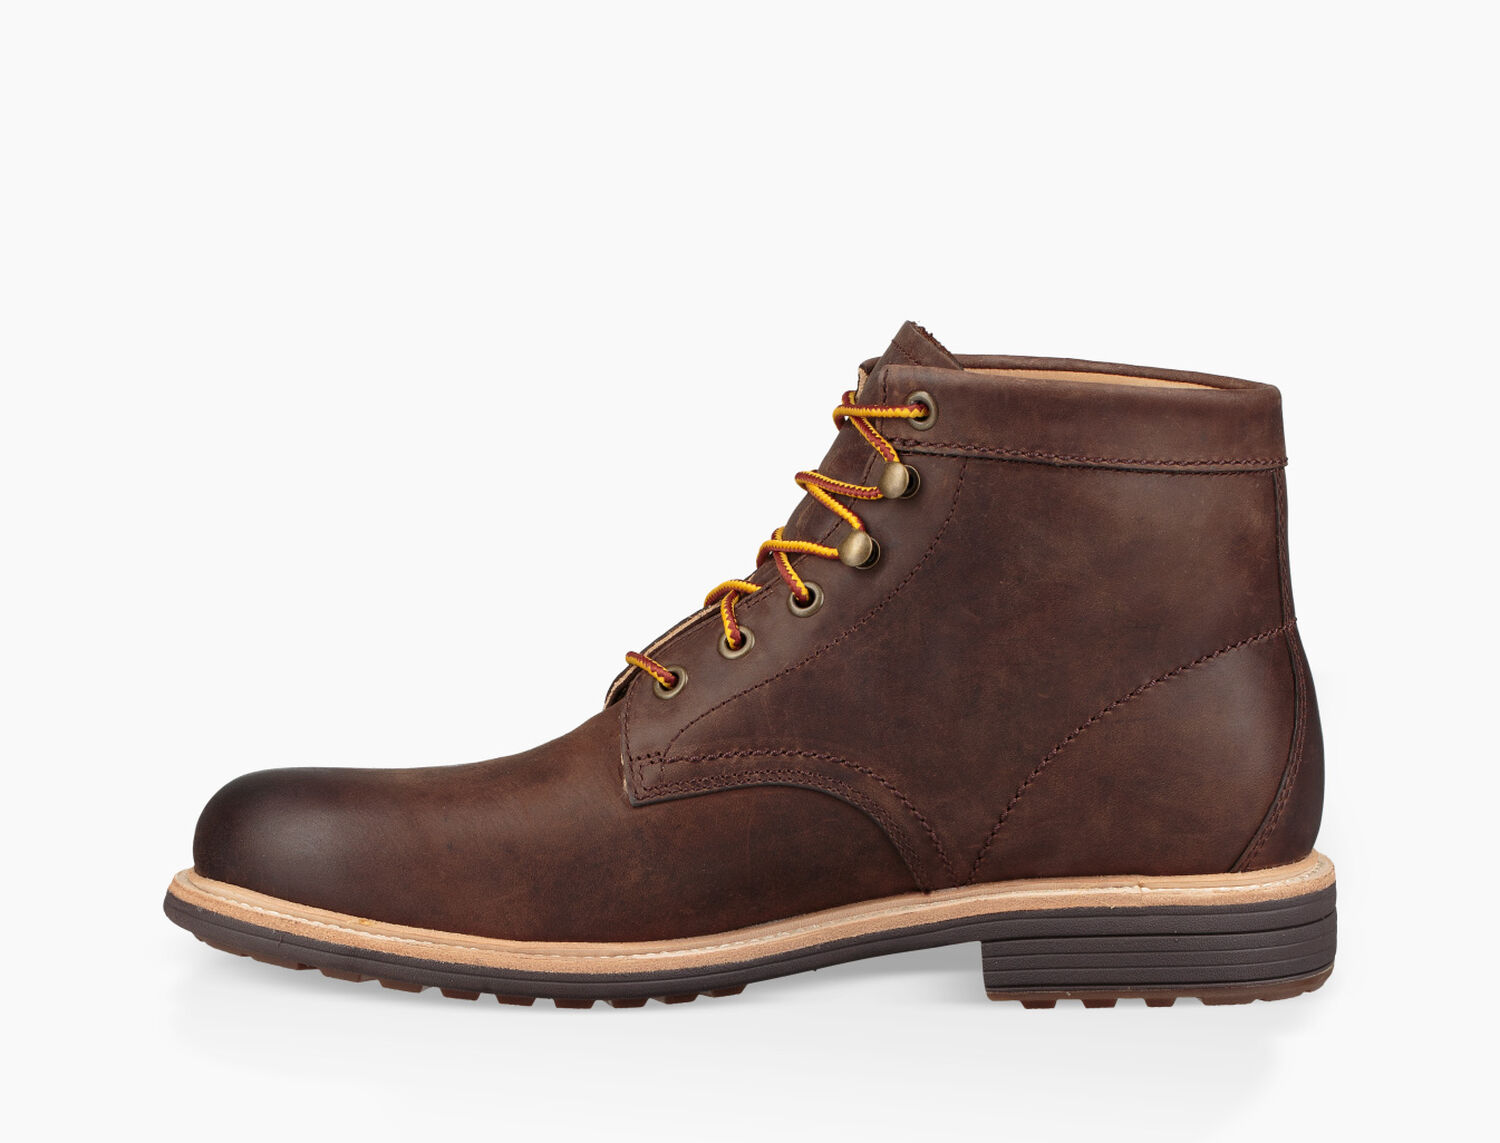 744e0fa4c55 Men's Share this product Vestmar Boot